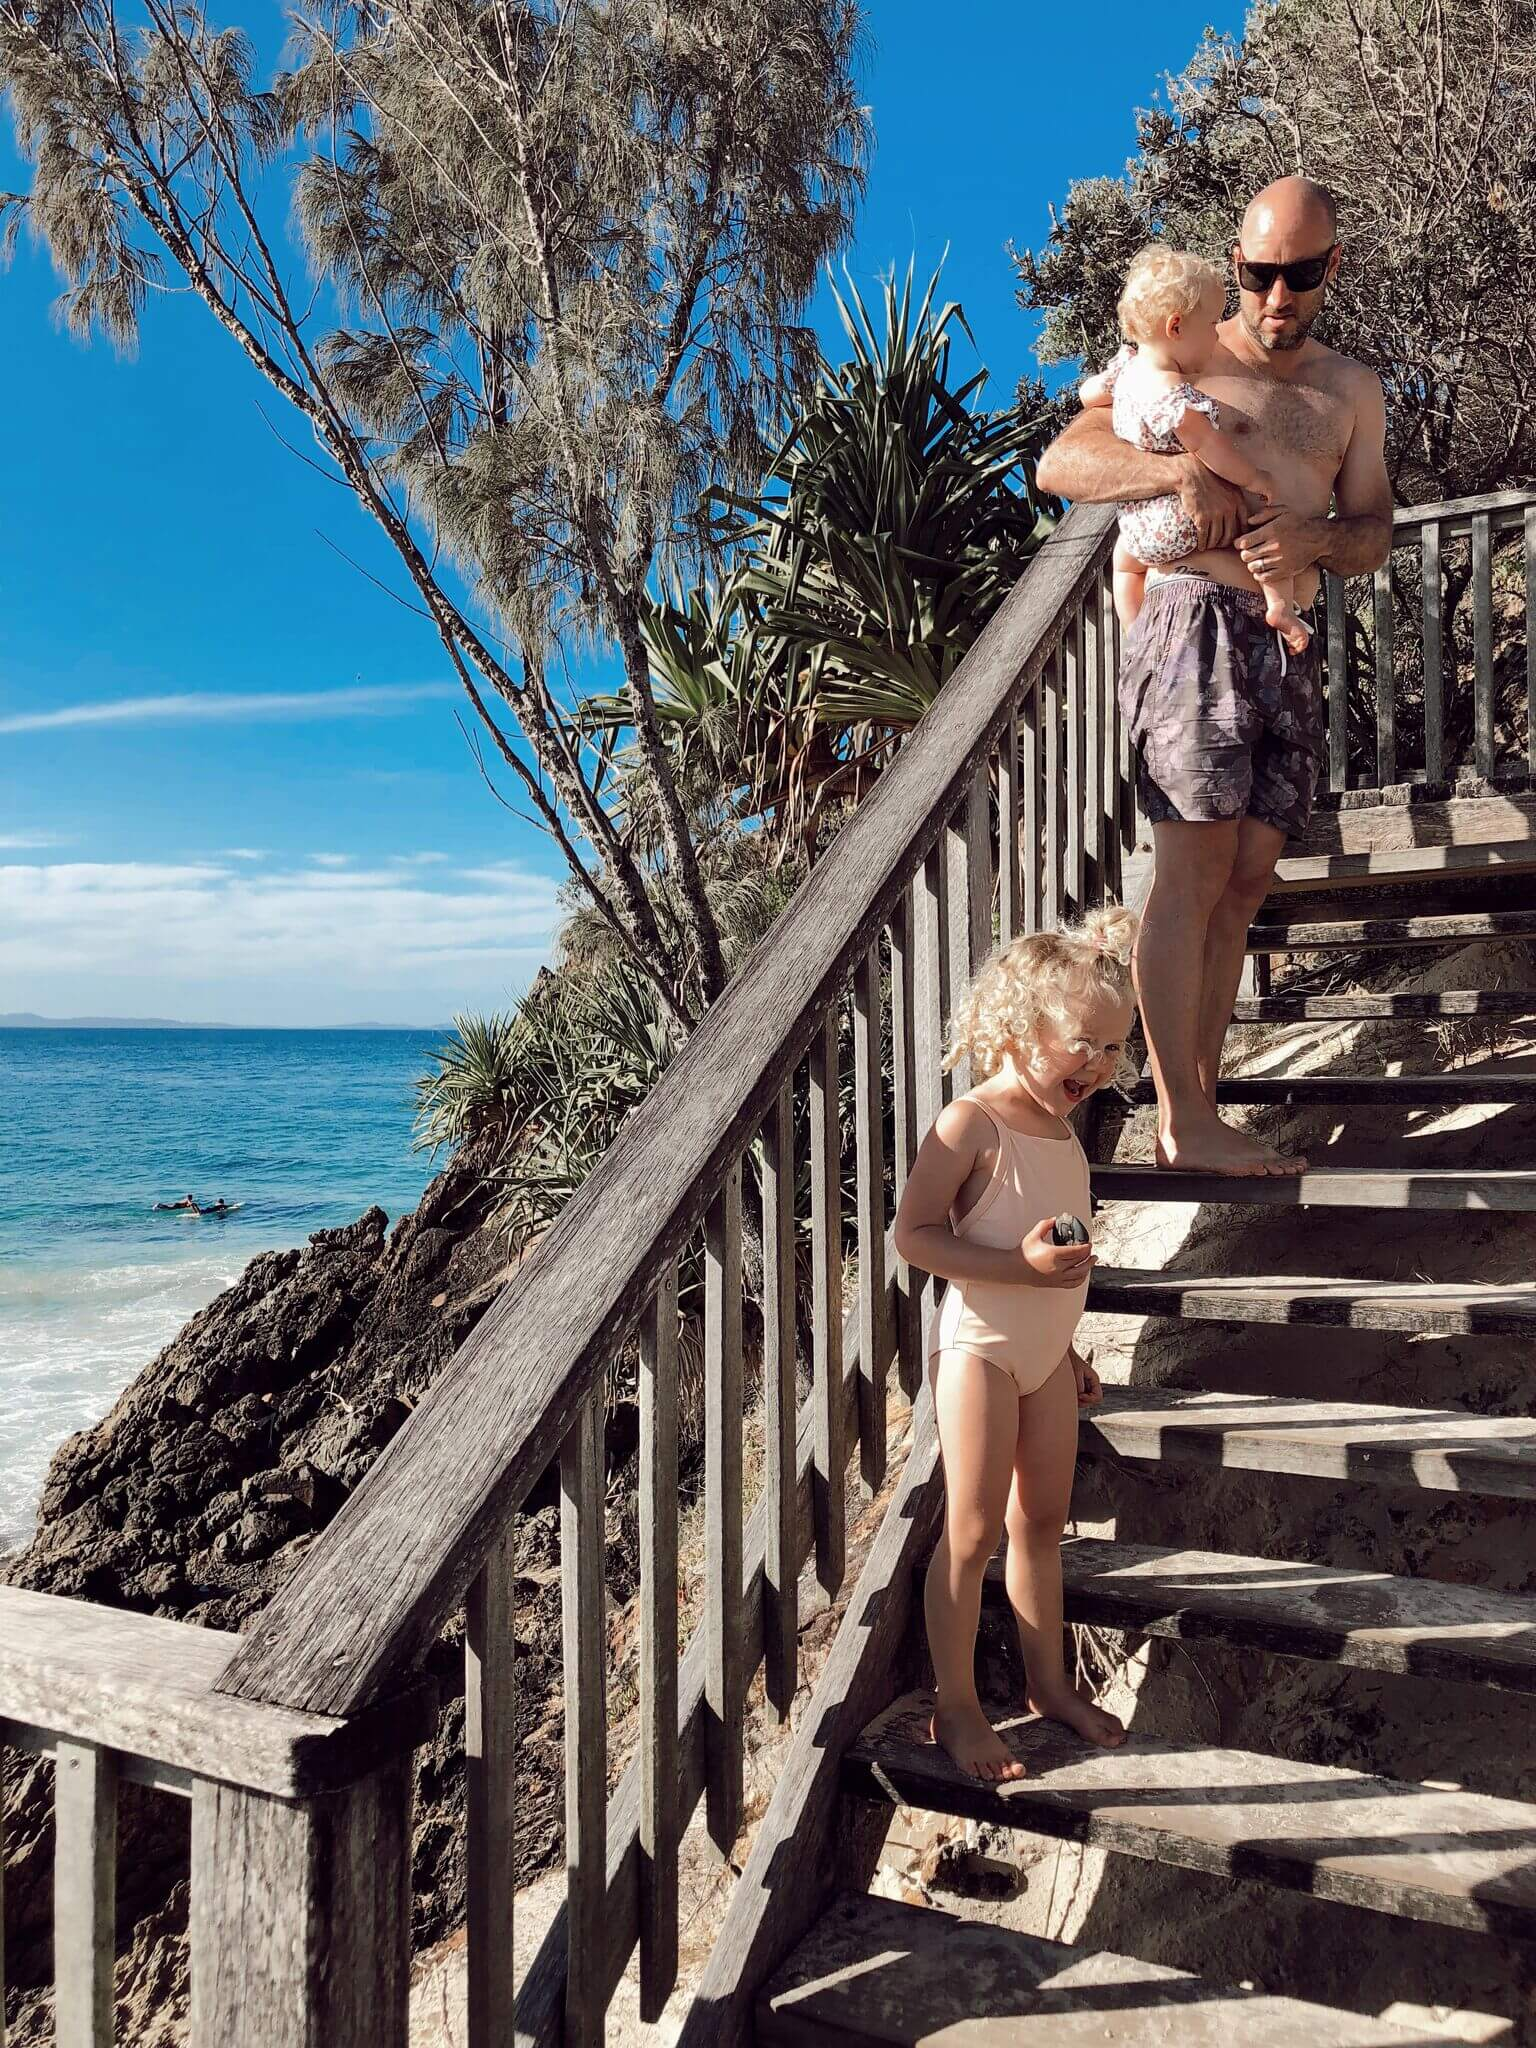 Dimity's Family holiday at The Bower Byron Bay - A Byron Beach Abodes property